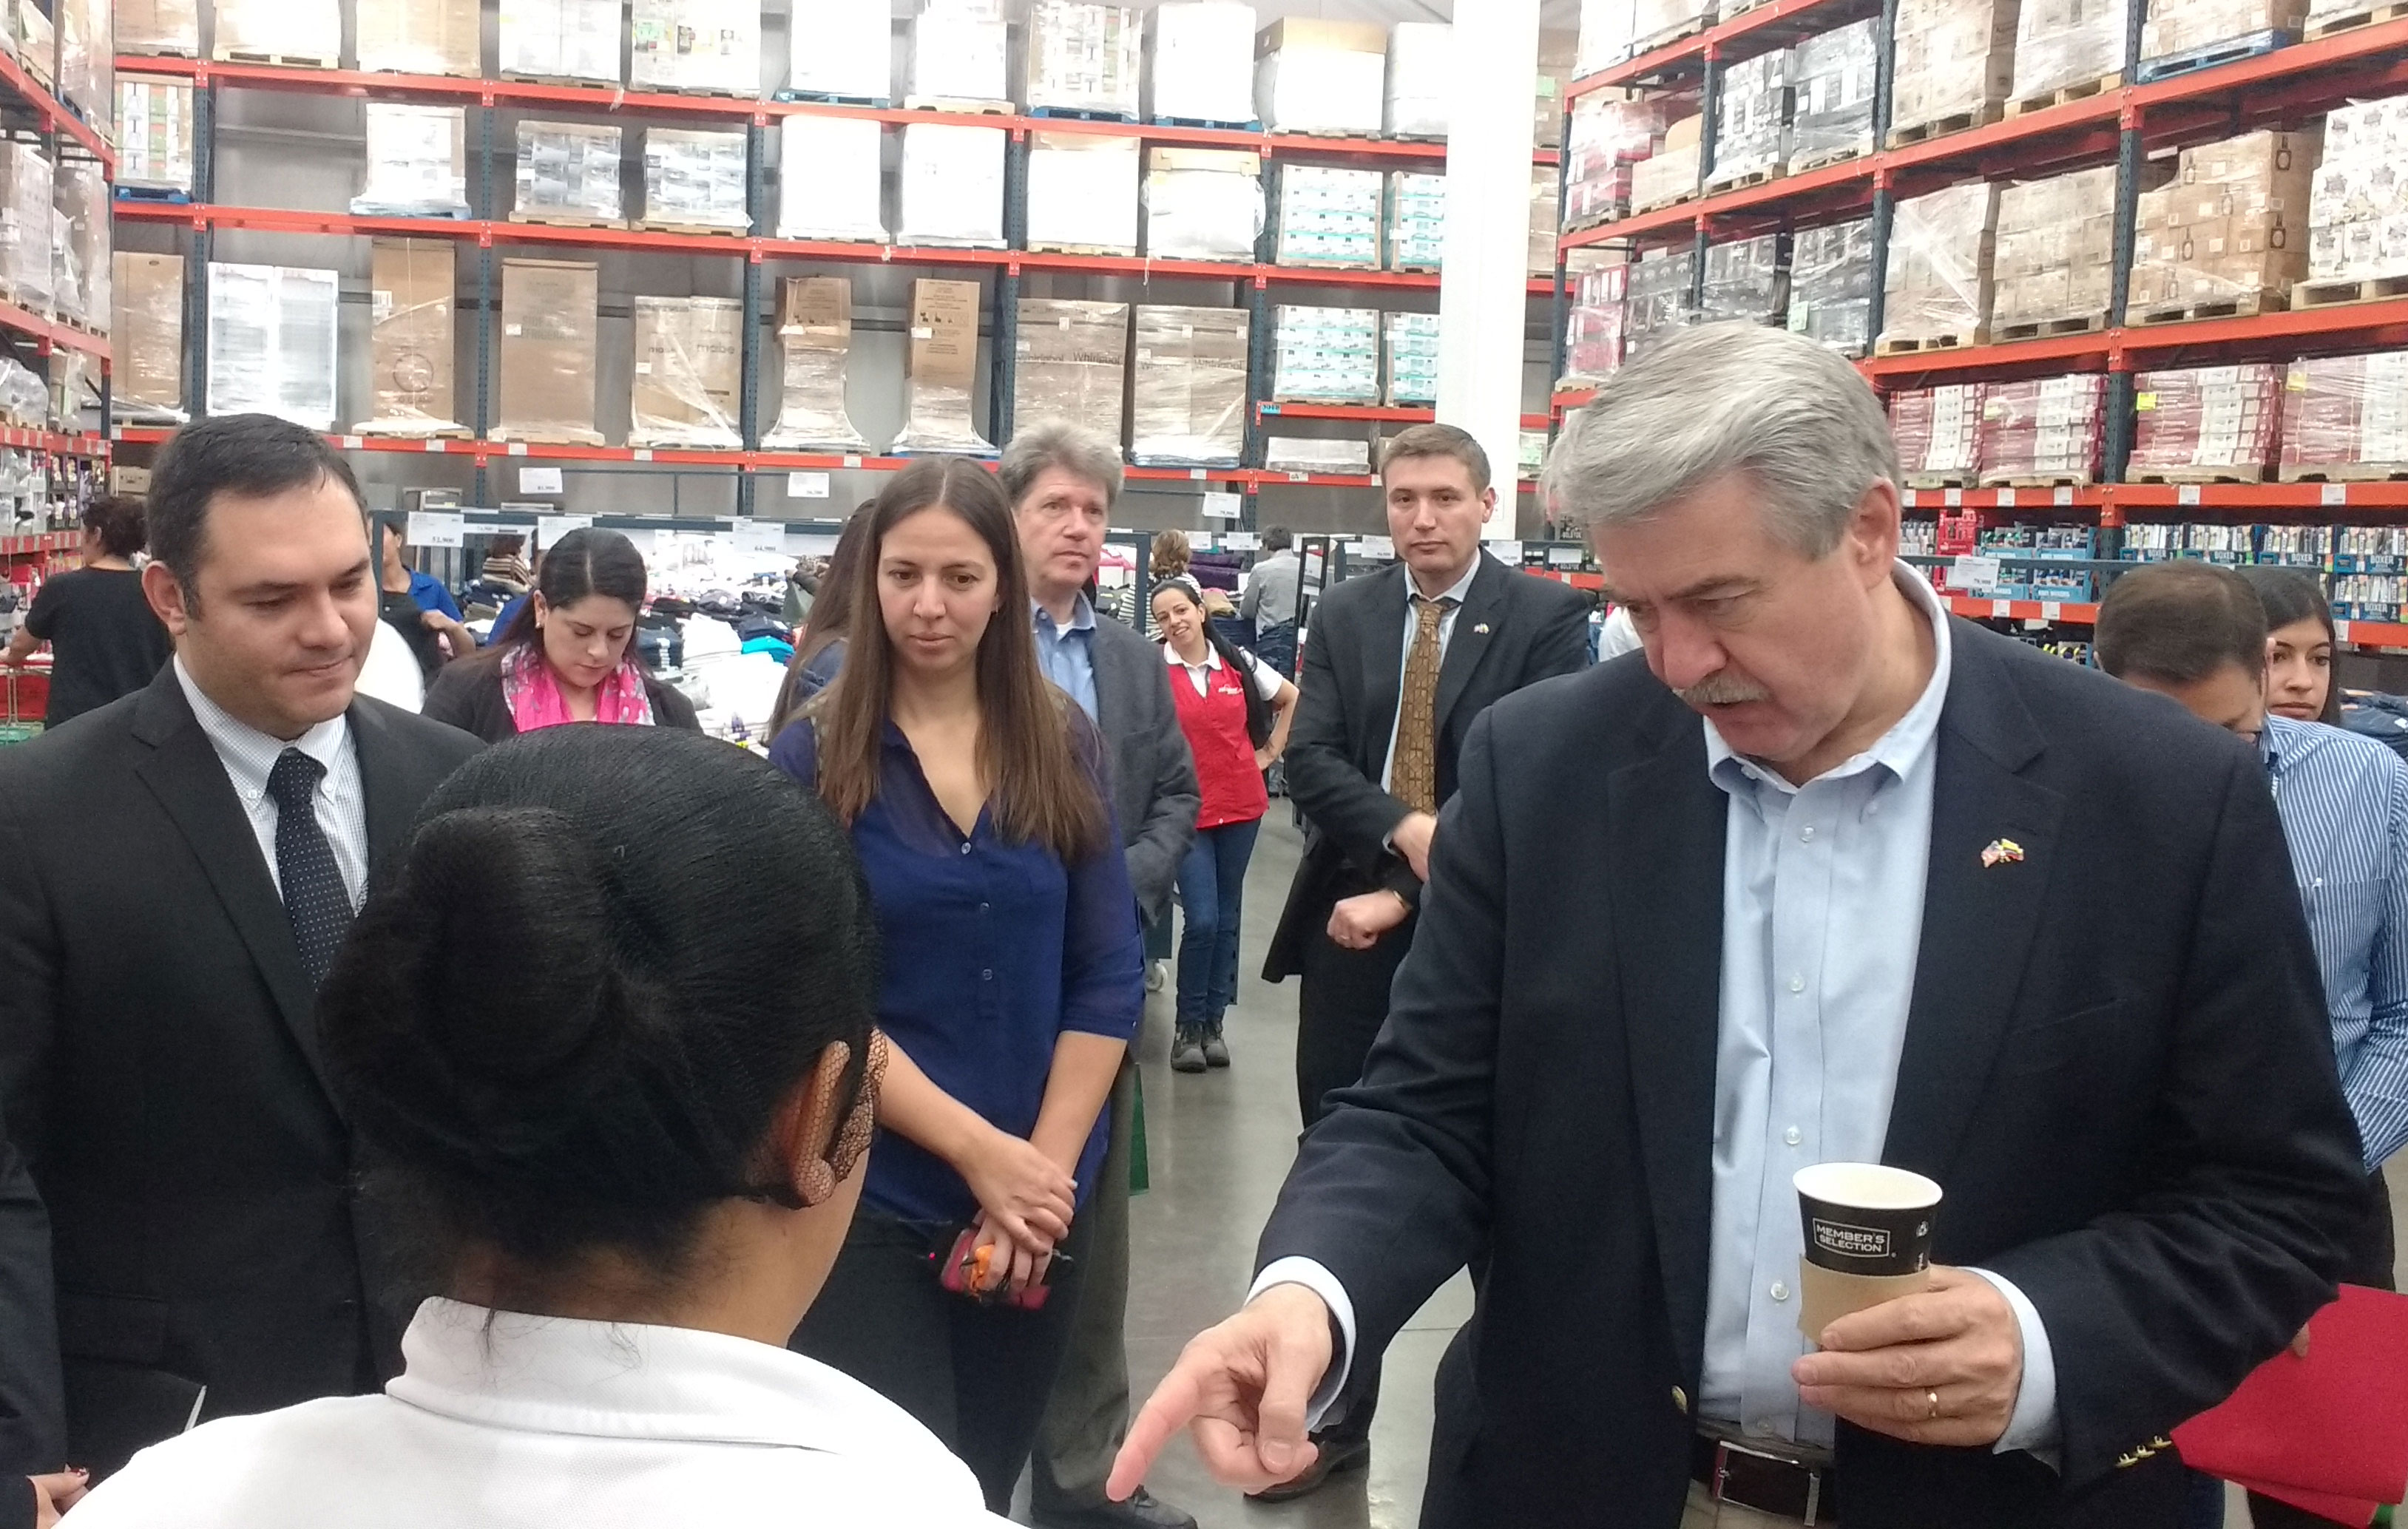 Group of people, including USDA-Undersecretary for Trade-Ted McKinney, shop at wholesale club store-in-Colombia